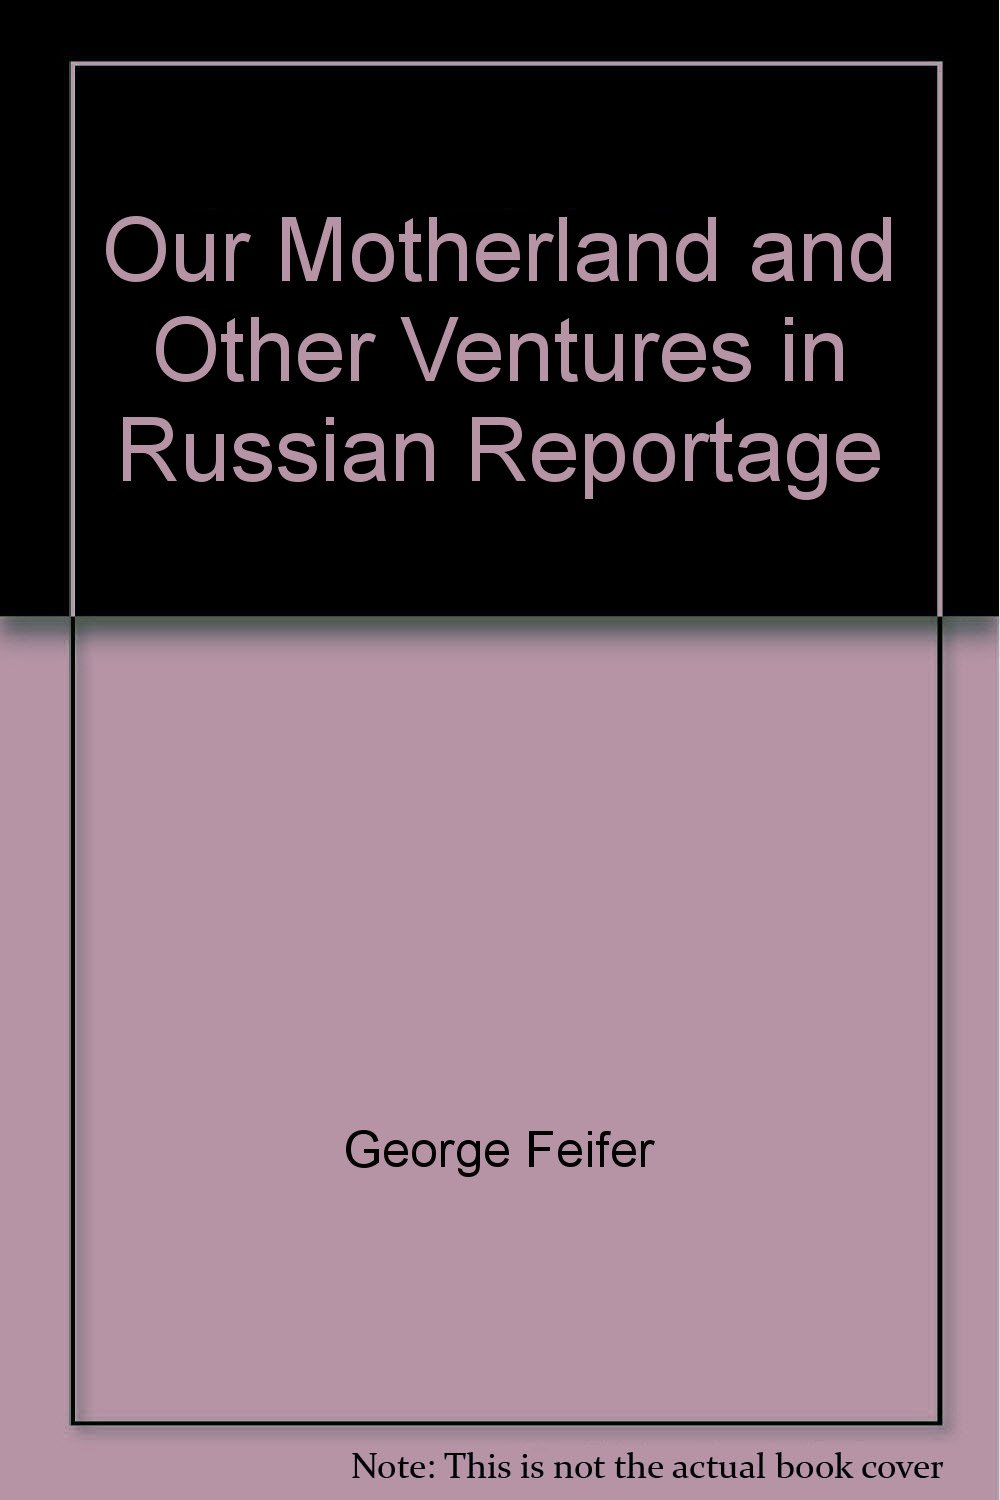 Our motherland and other ventures in Russian reportage book written by George Feifer